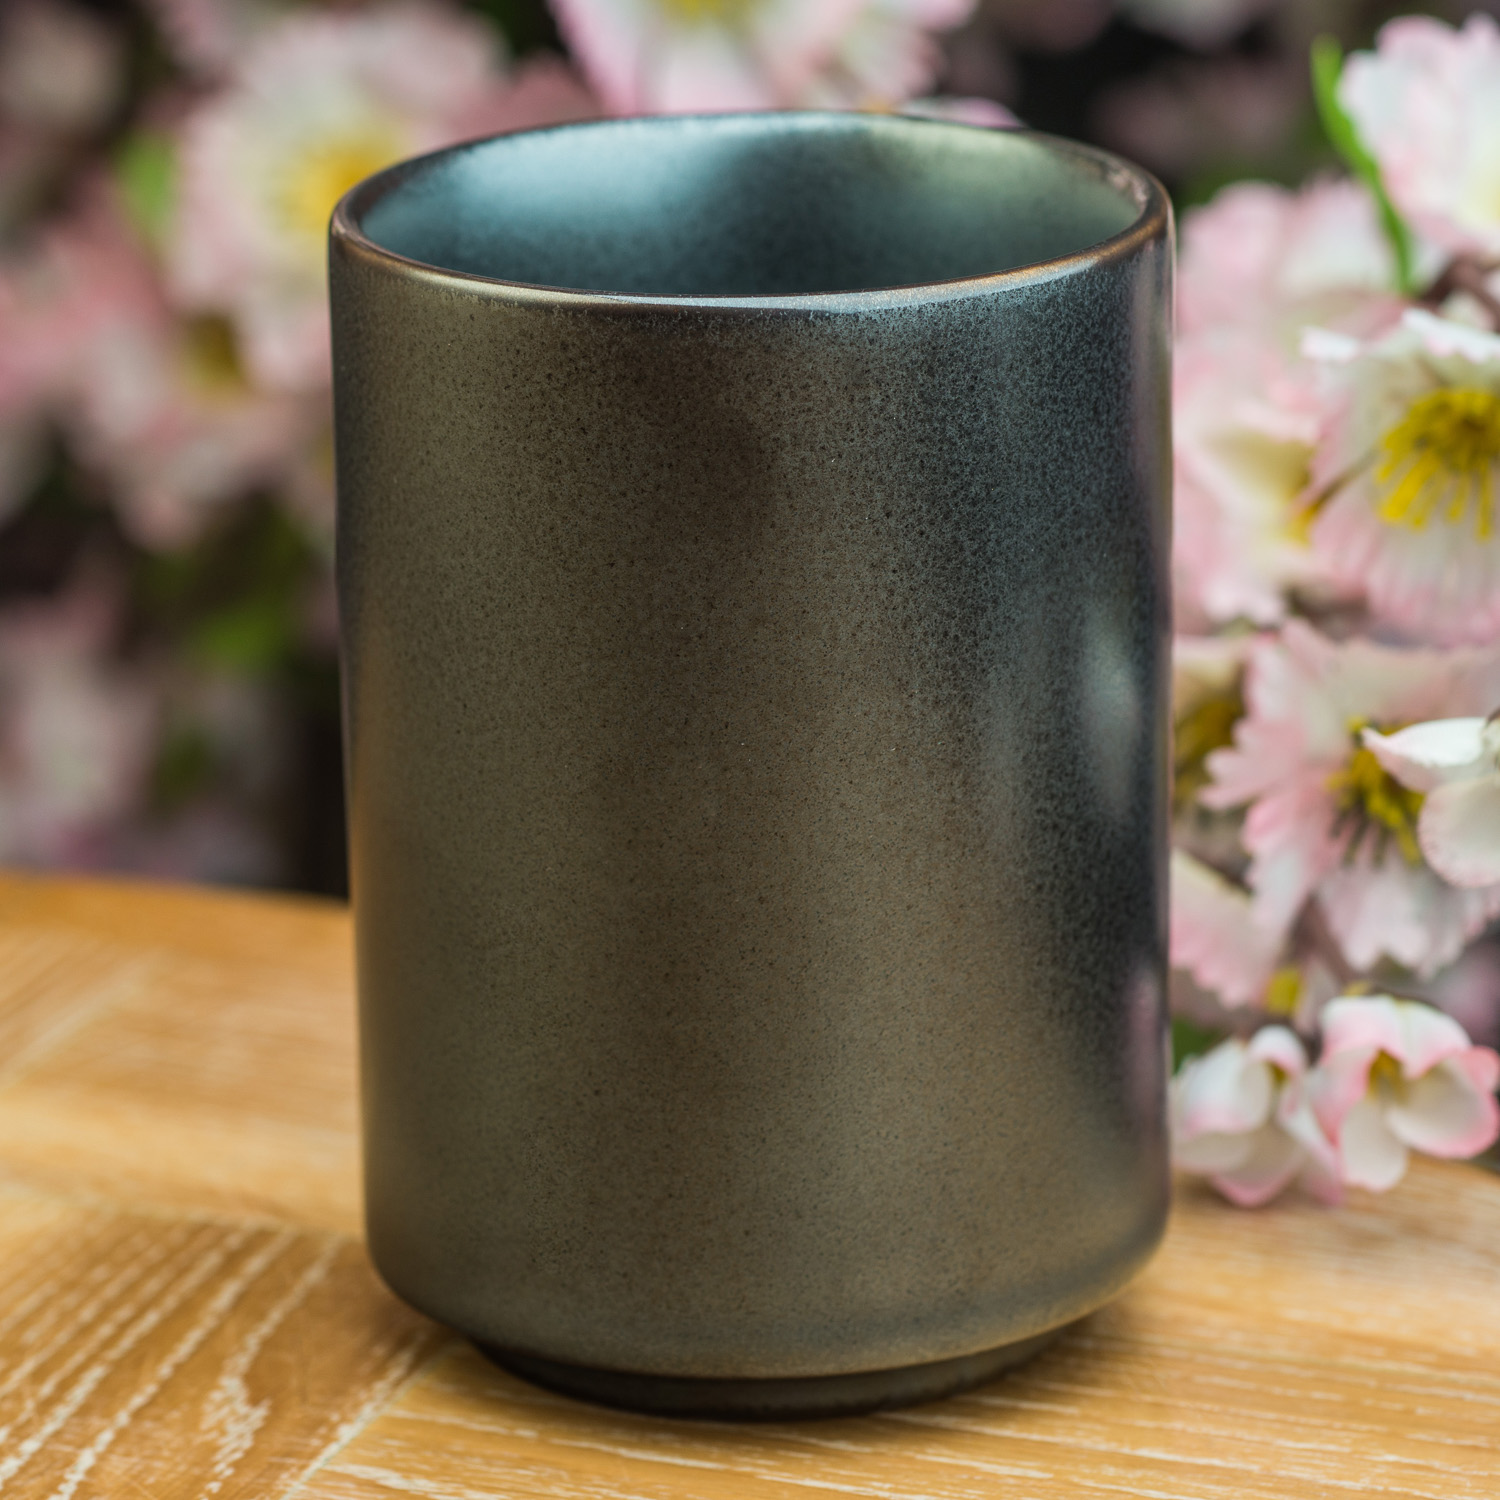 Sumi Grey Japanese Teacup Japanese Cups And Mugs